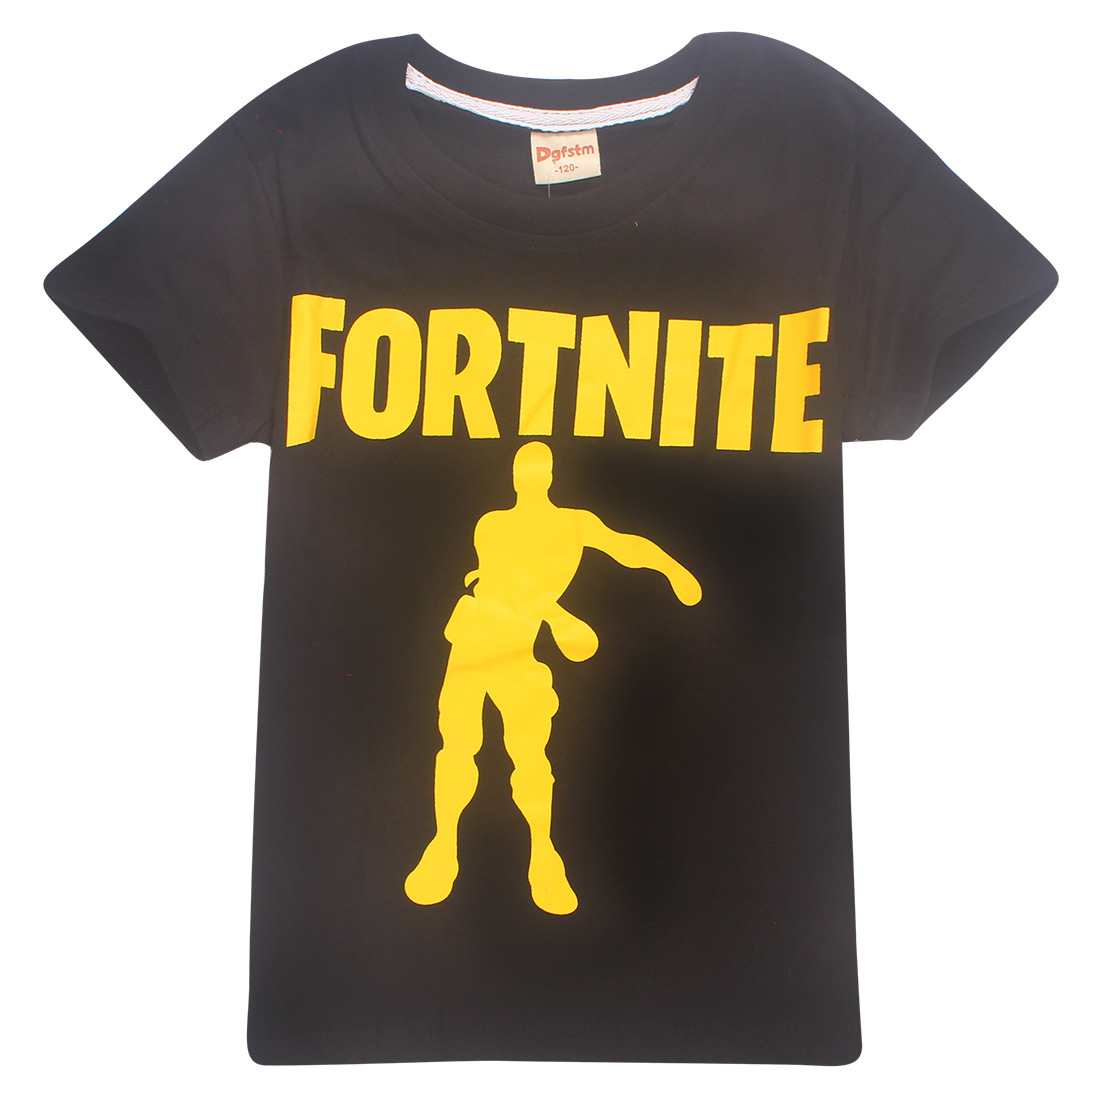 Fortnite T Shirt Kids Tops Summer Short Sleeve TShirt Girls T-shirts Tee Boys Casual O Neck Tees Anime Cartoon Children Clothes